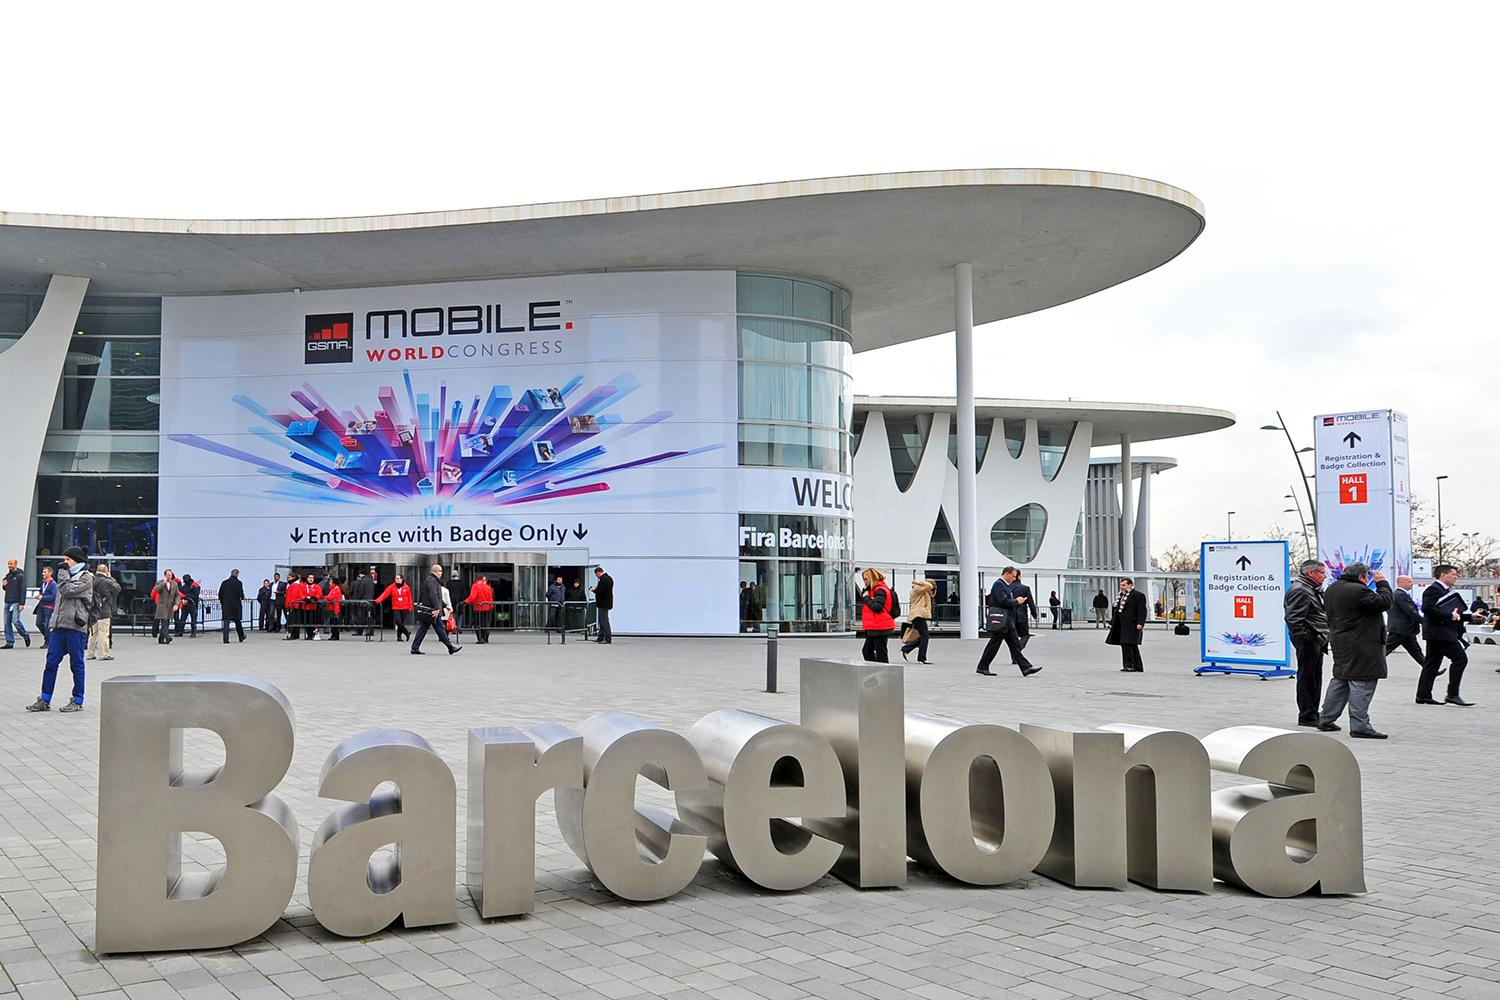 Come and visit Pradeo at the Mobile World Congress